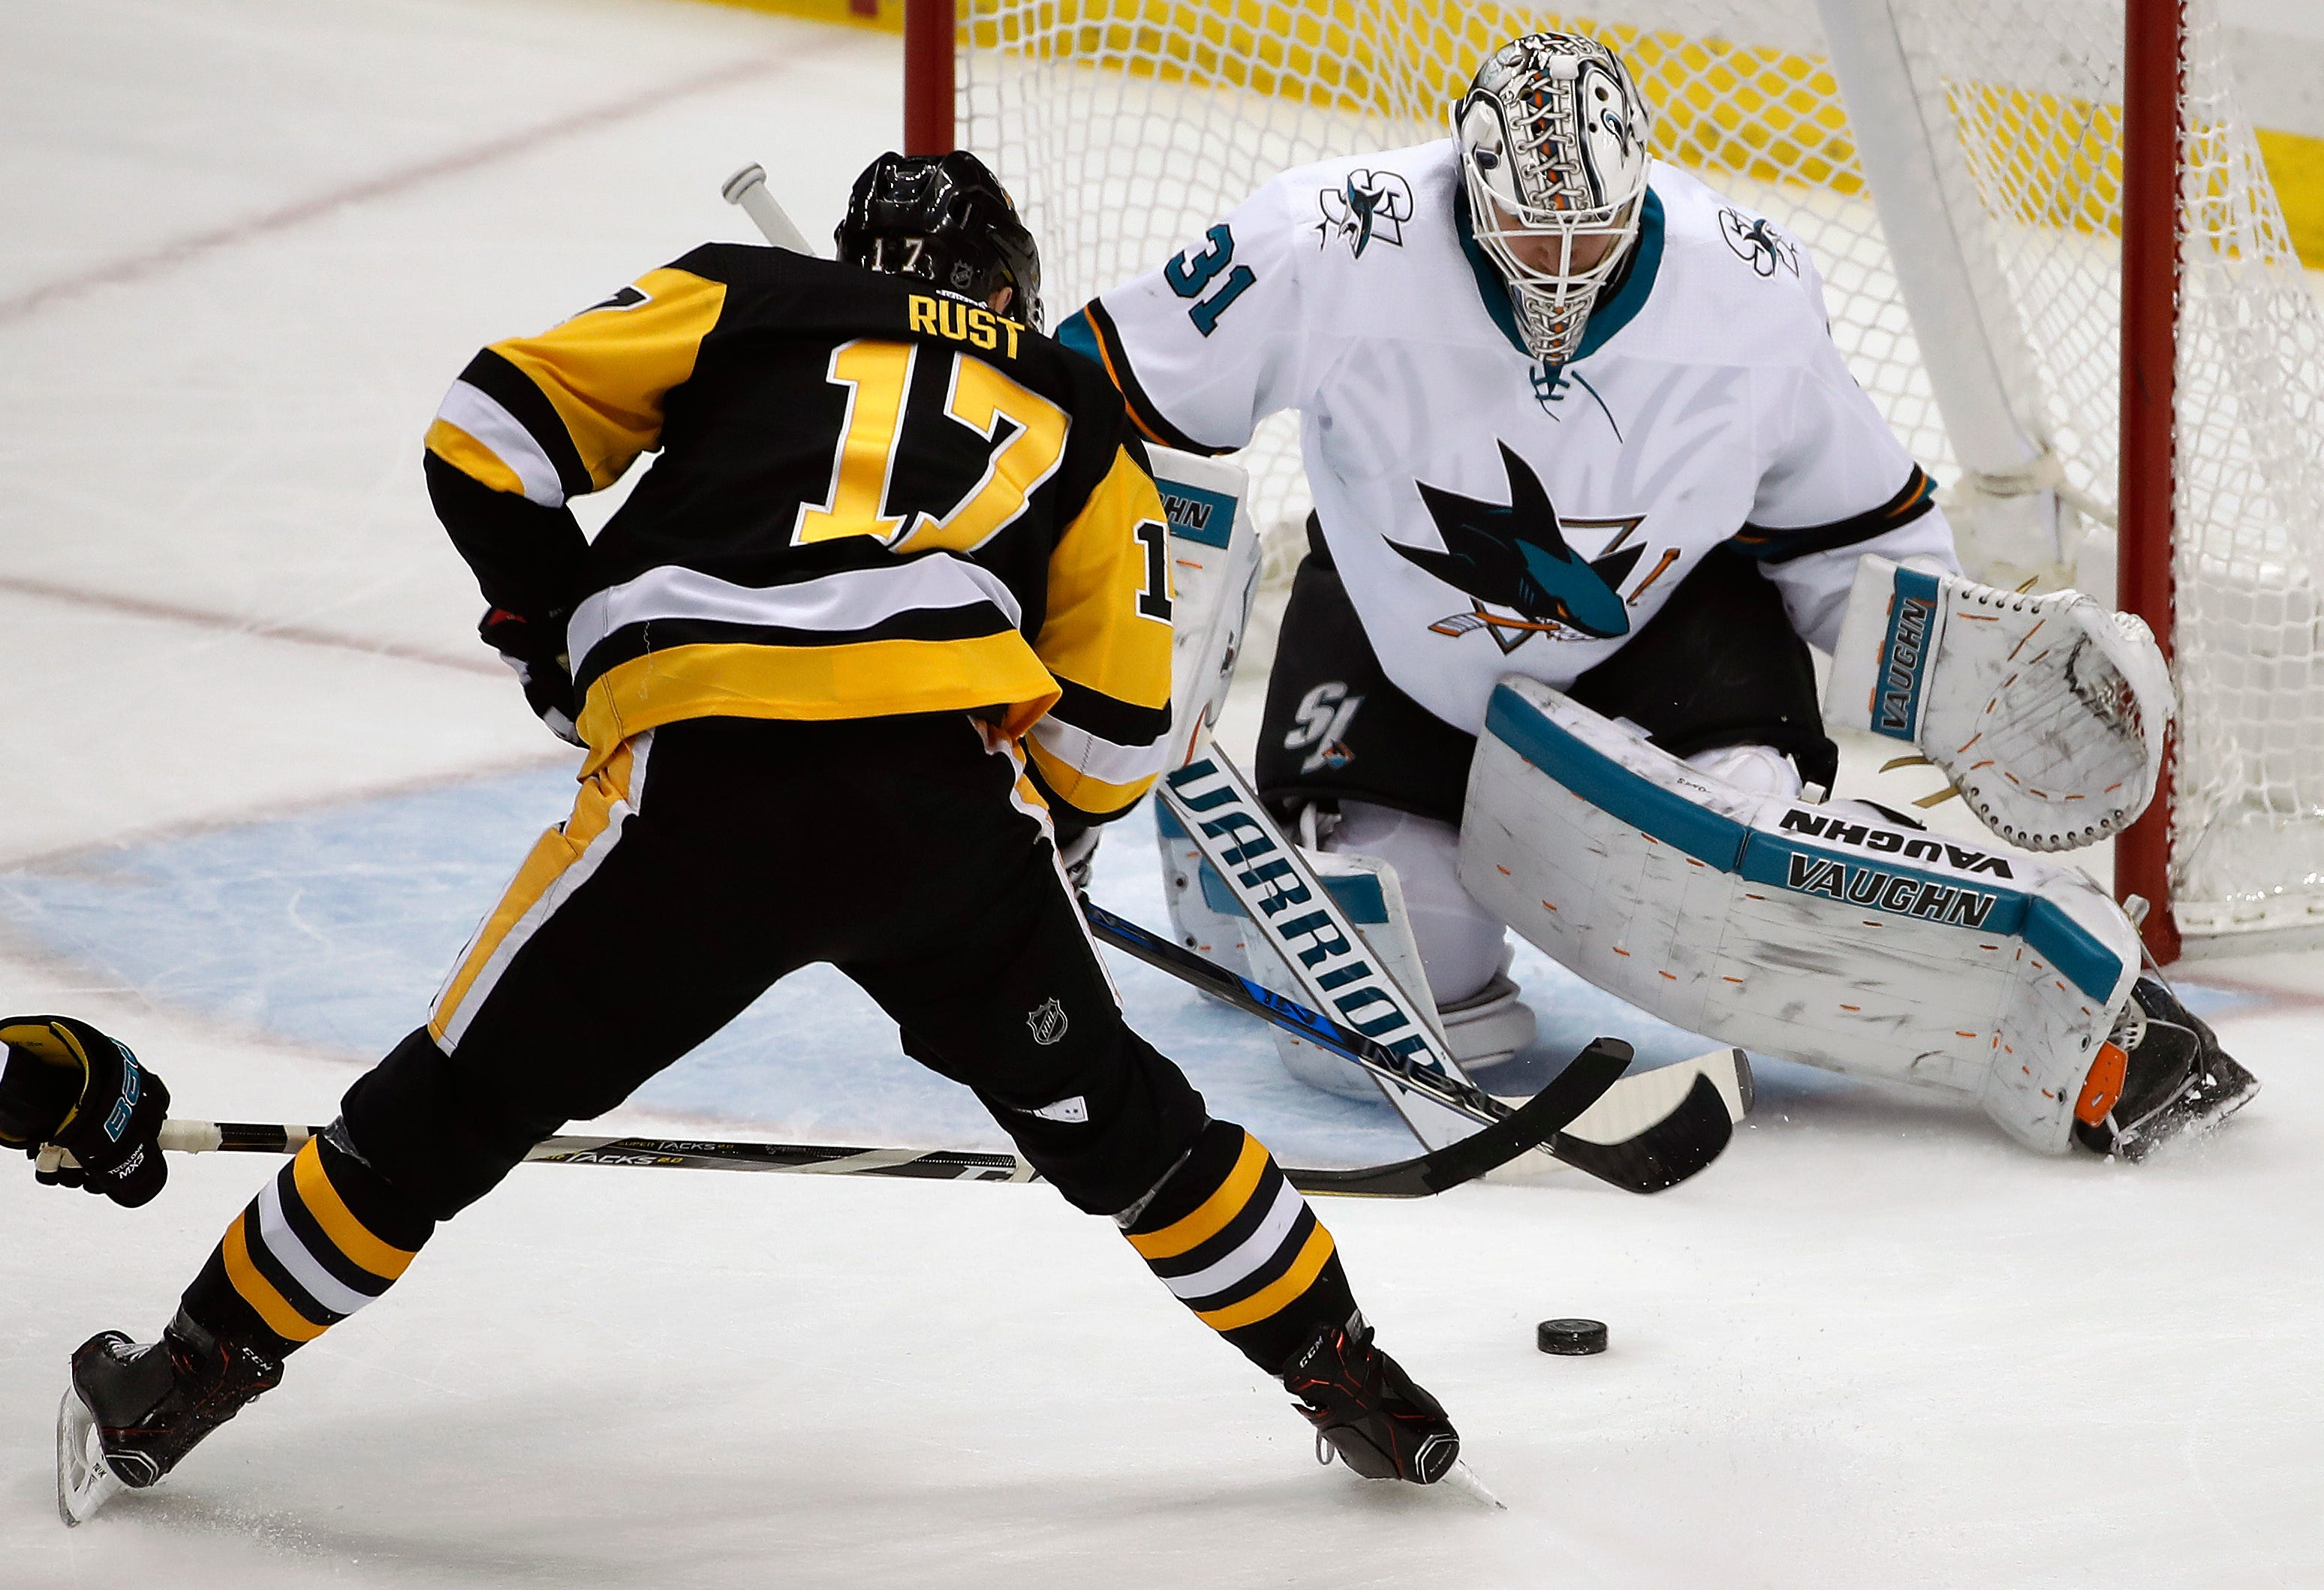 Malkin's hat trick powers Penguins past Sharks 5-2